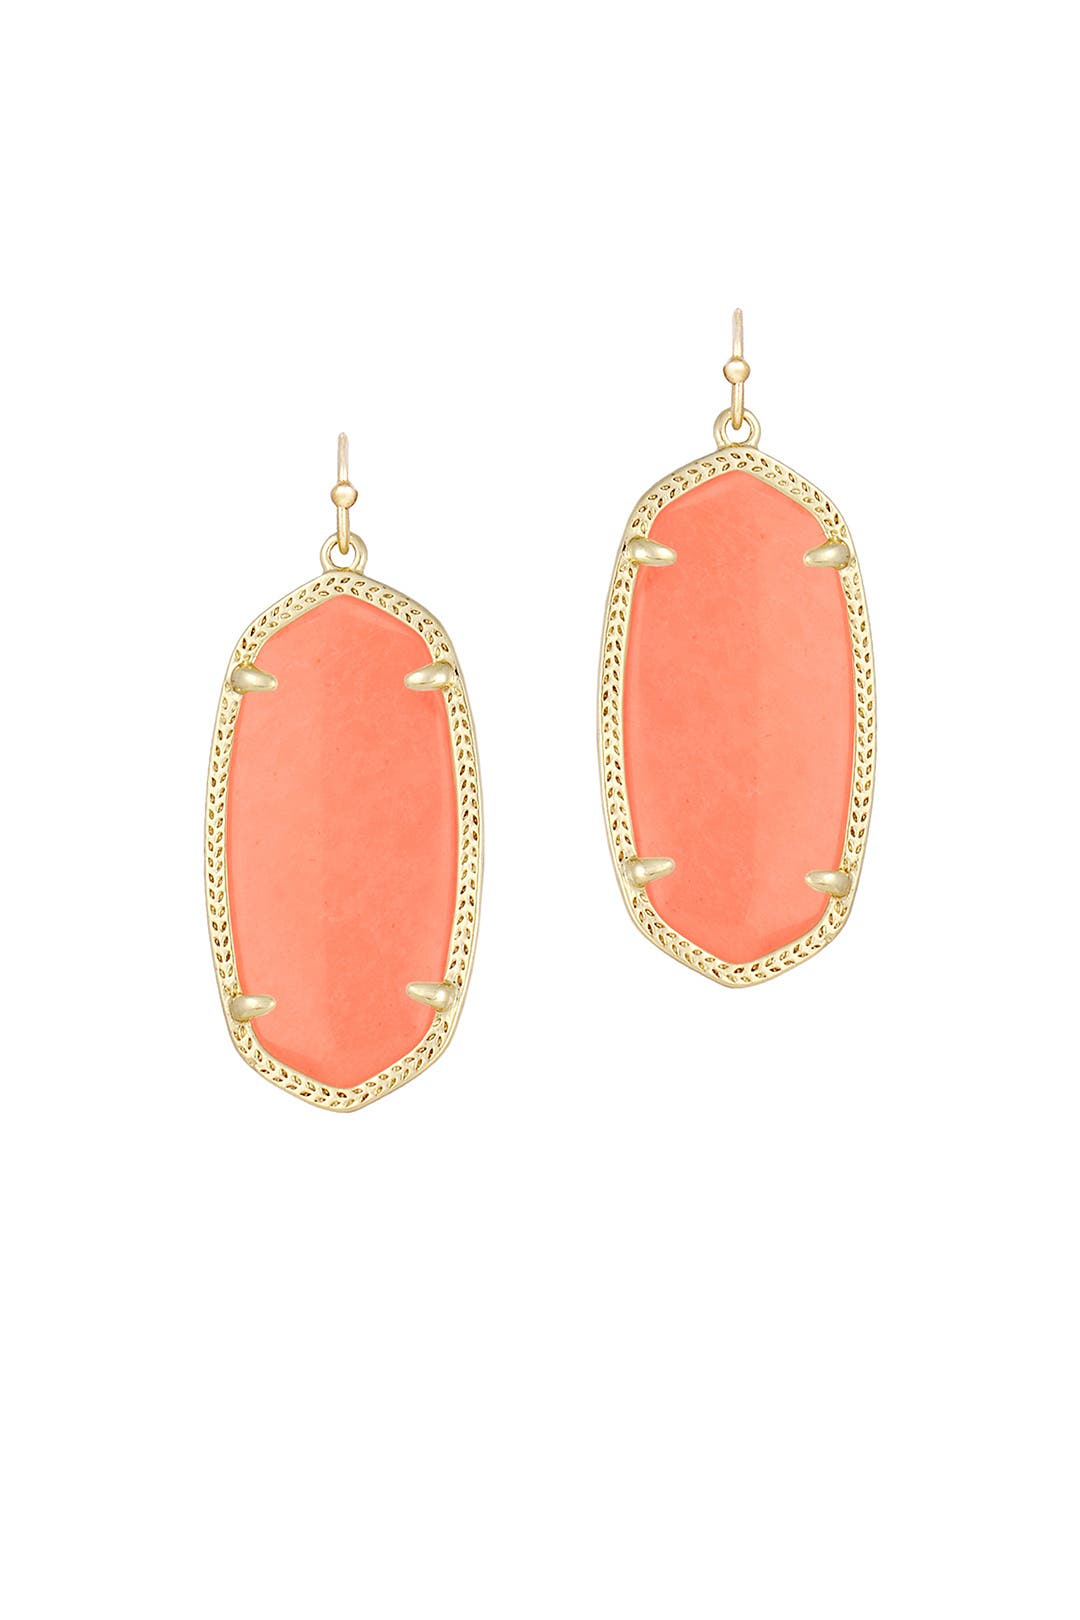 Earrings - Kendra Scott Great selection and prices for Wedding Gifts ...